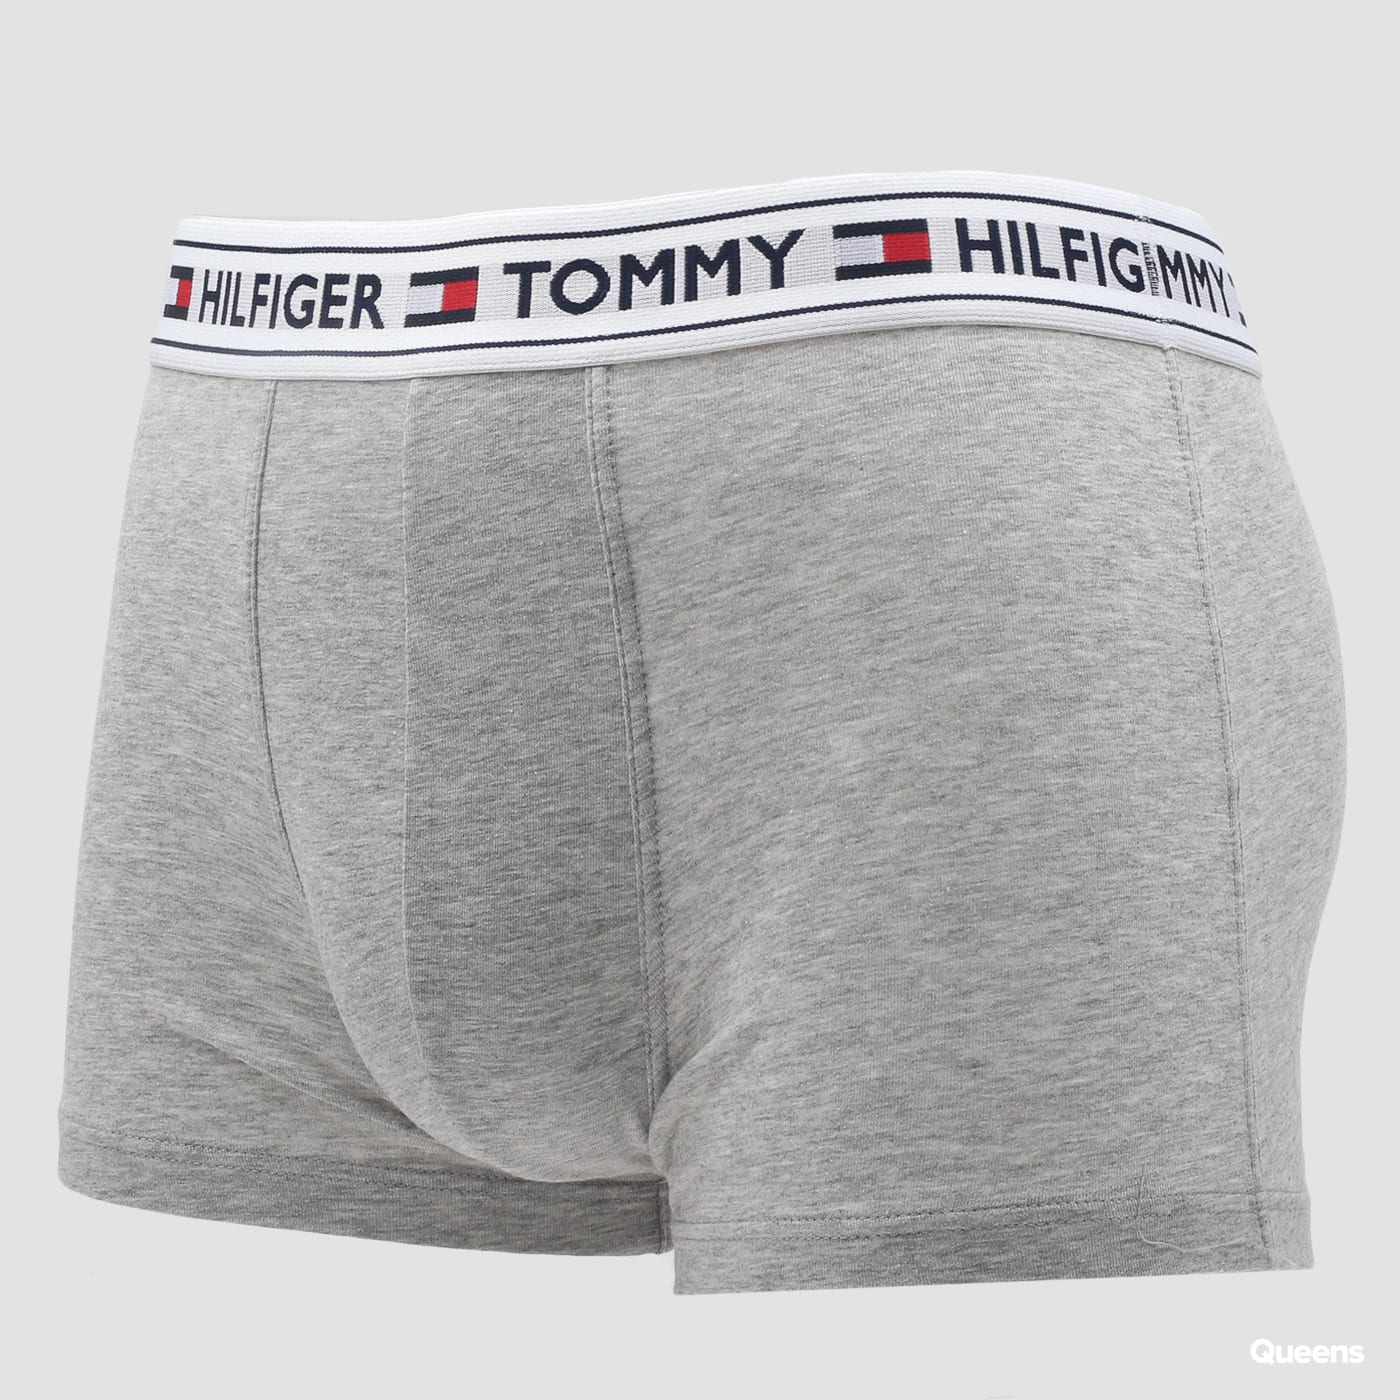 Tommy Hilfiger Authentic Trunk C/O grau melange